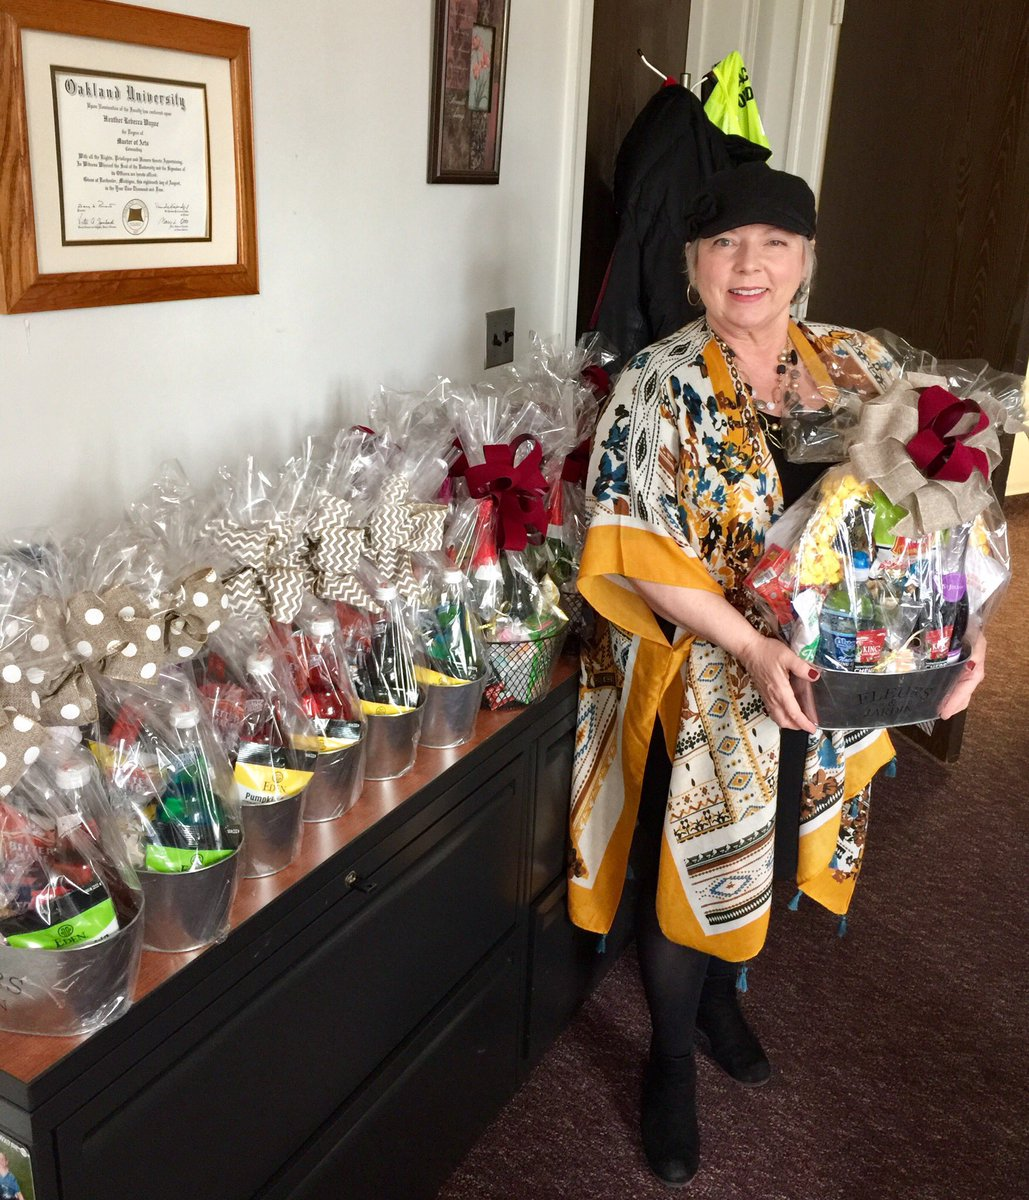 Thank you to FSA Linda Ratza for making the awesome baskets for the Oakland County Probation/Parole Agents Conference @Dietrichb7 @MDOC_QPN @MDOCFOA @smithb3333 @LatrecePorter